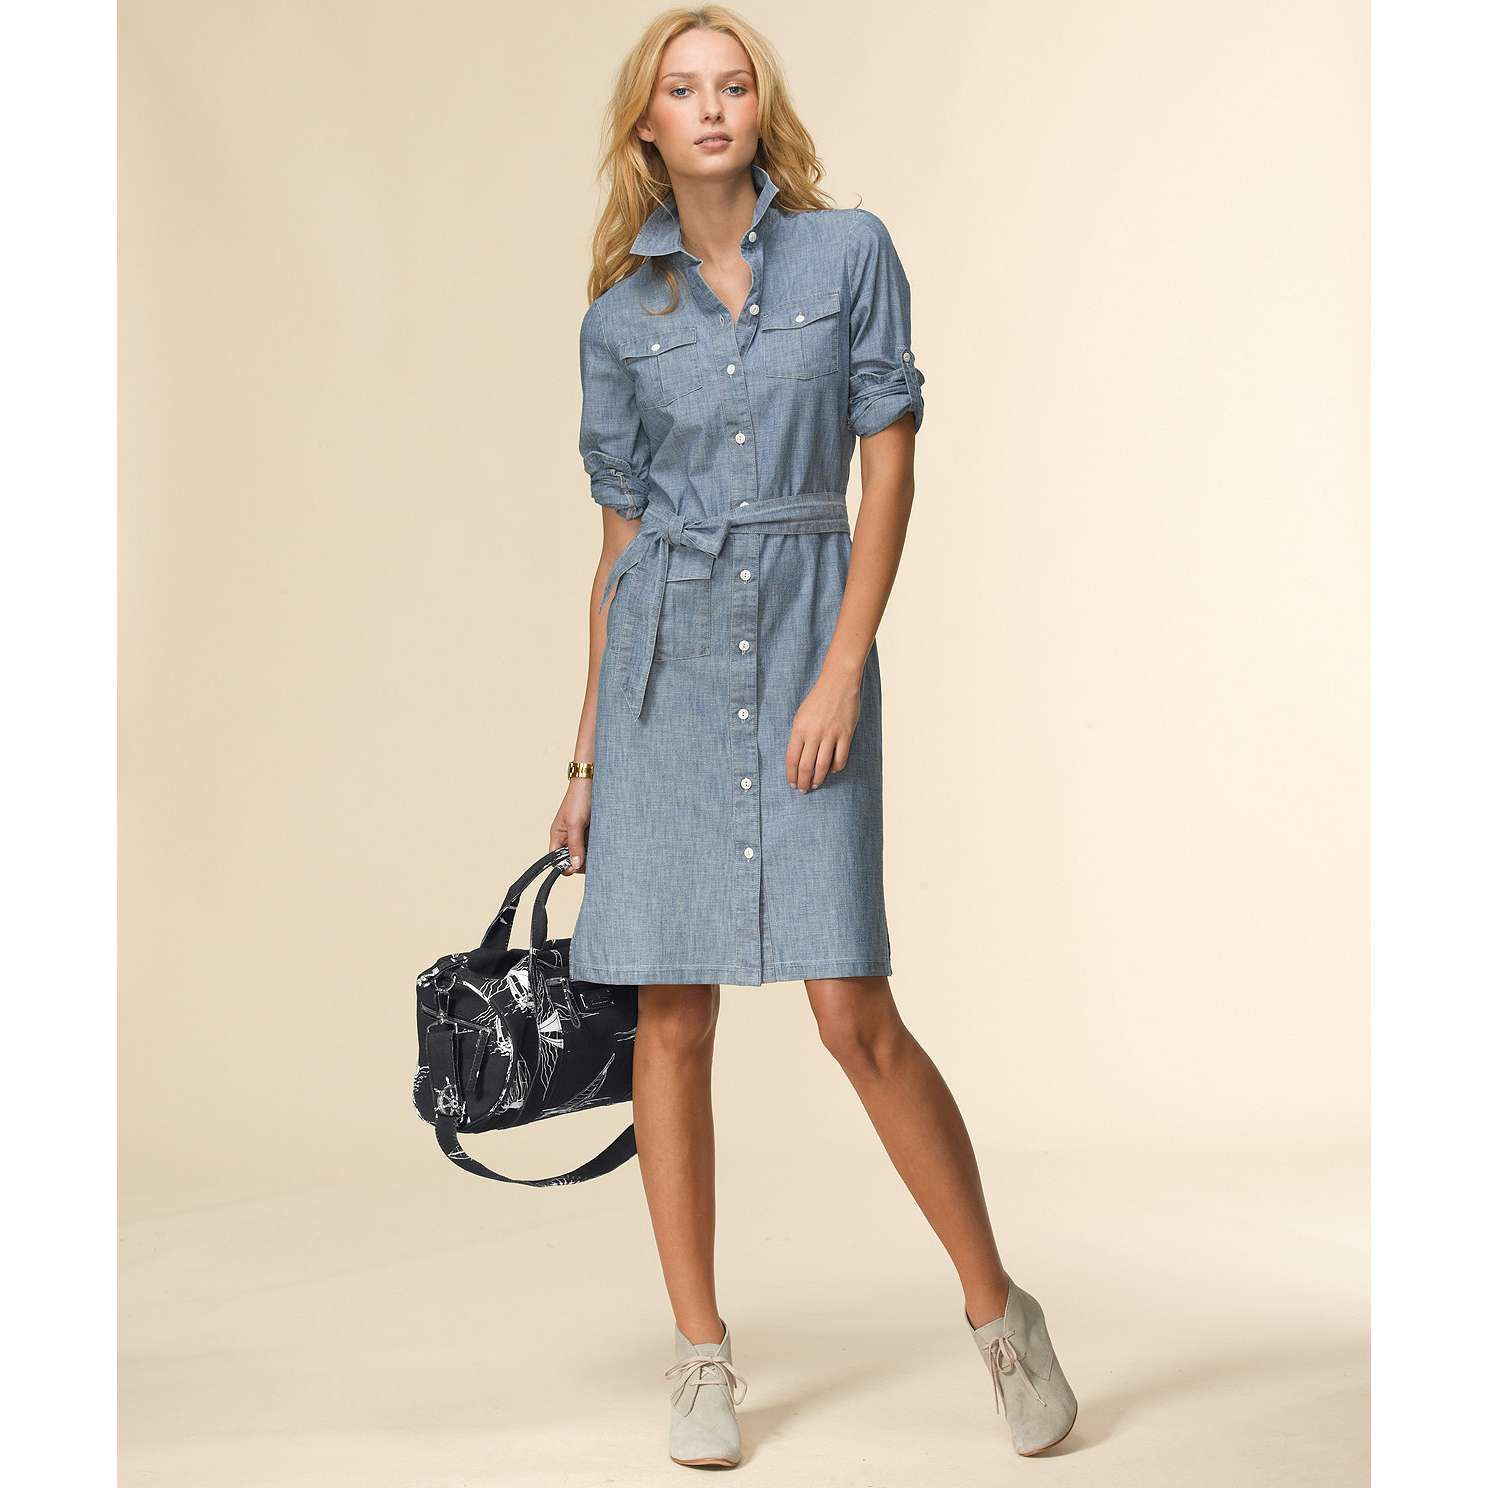 Chambray dresses for women images for Chambray 7 s